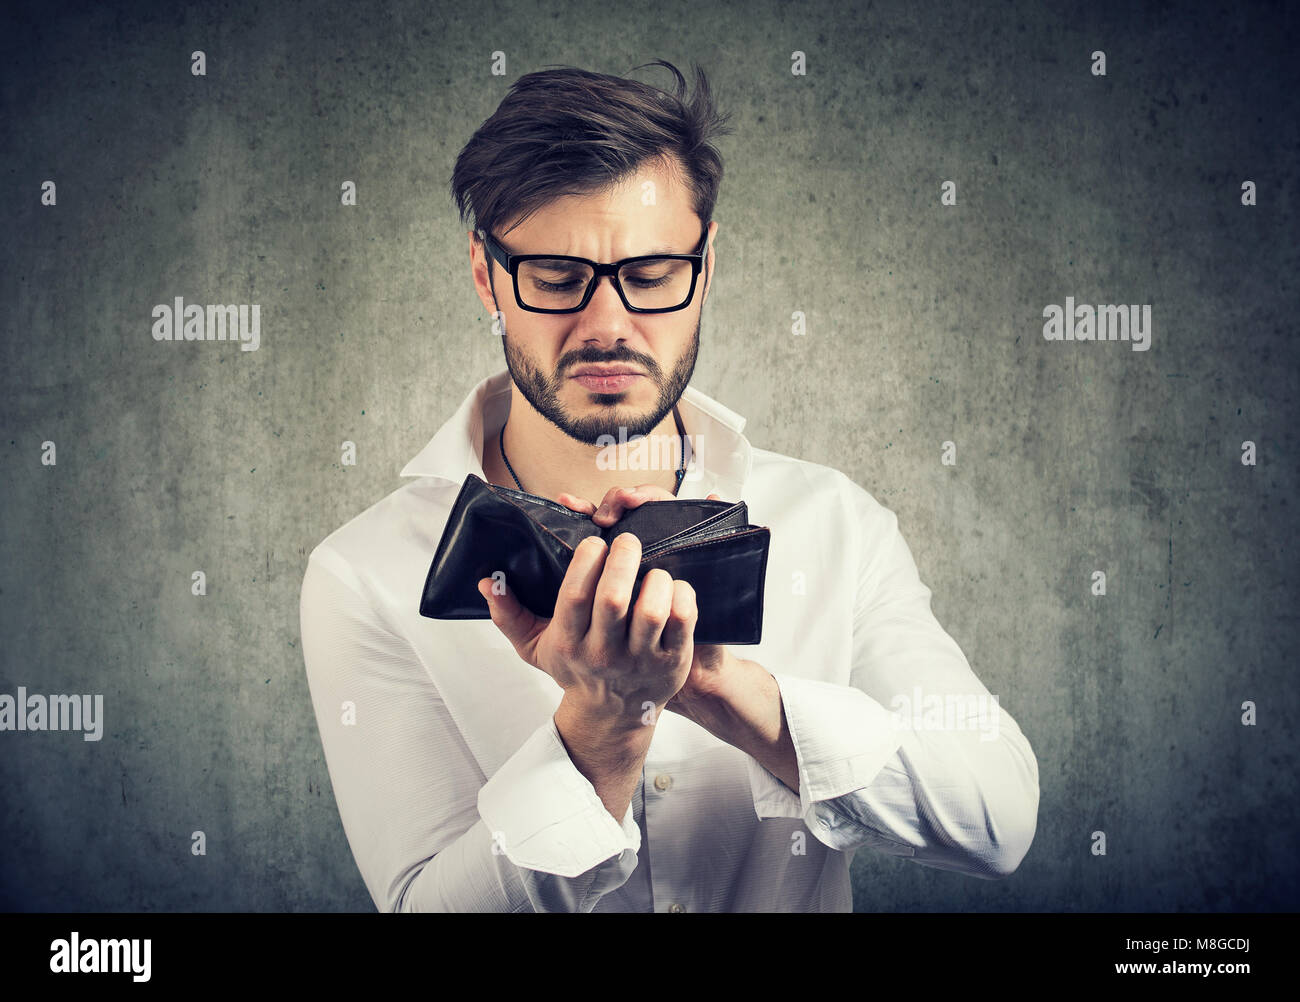 Young handsome man upset with empty wallet having financial difficulties spending all money. - Stock Image